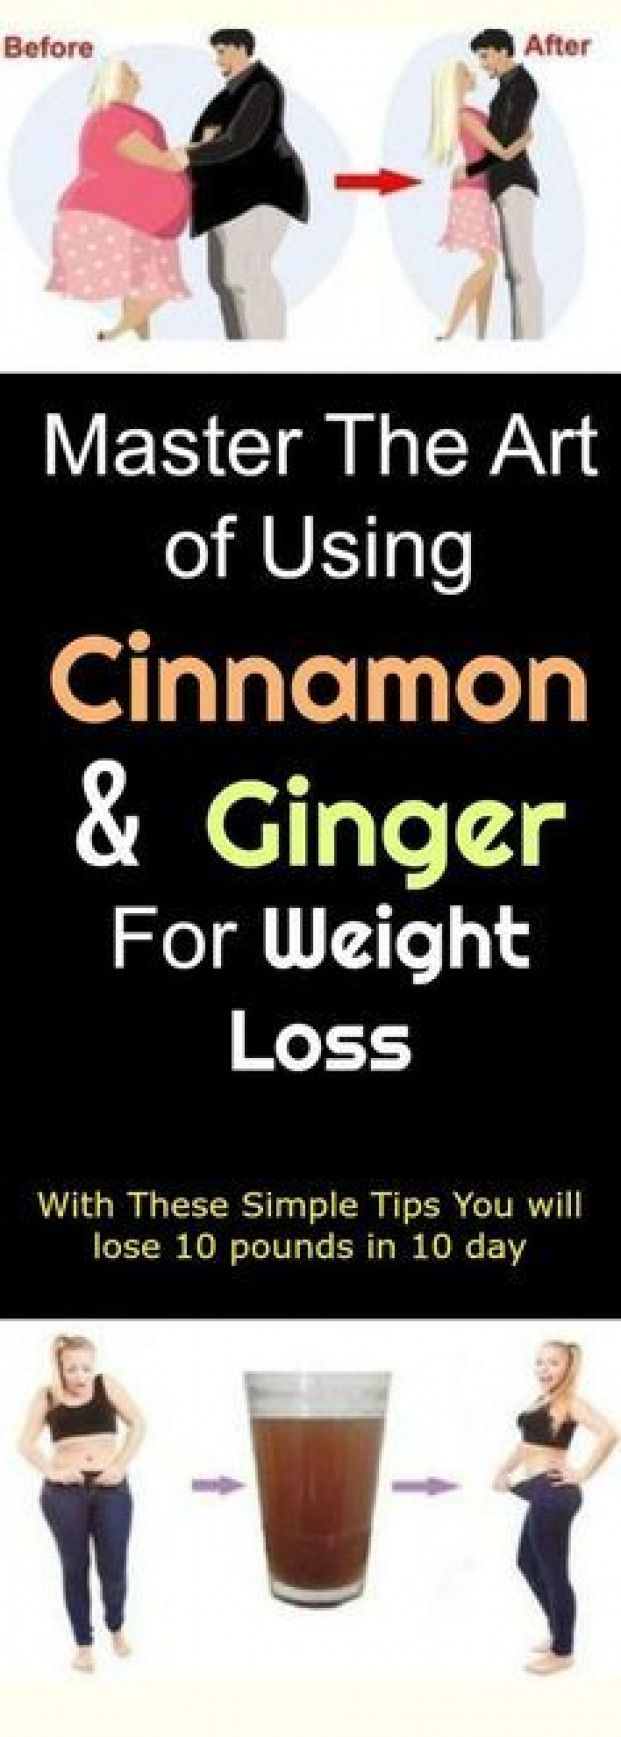 Herbs for weight loss Cinnamon and Ginger for Weight Loss Dear there is no actual magic to weight loss it requires discipline determination and diets control. However some herbs fruits oils and spices can help you to achieve your desired weight. That is why I want to shar